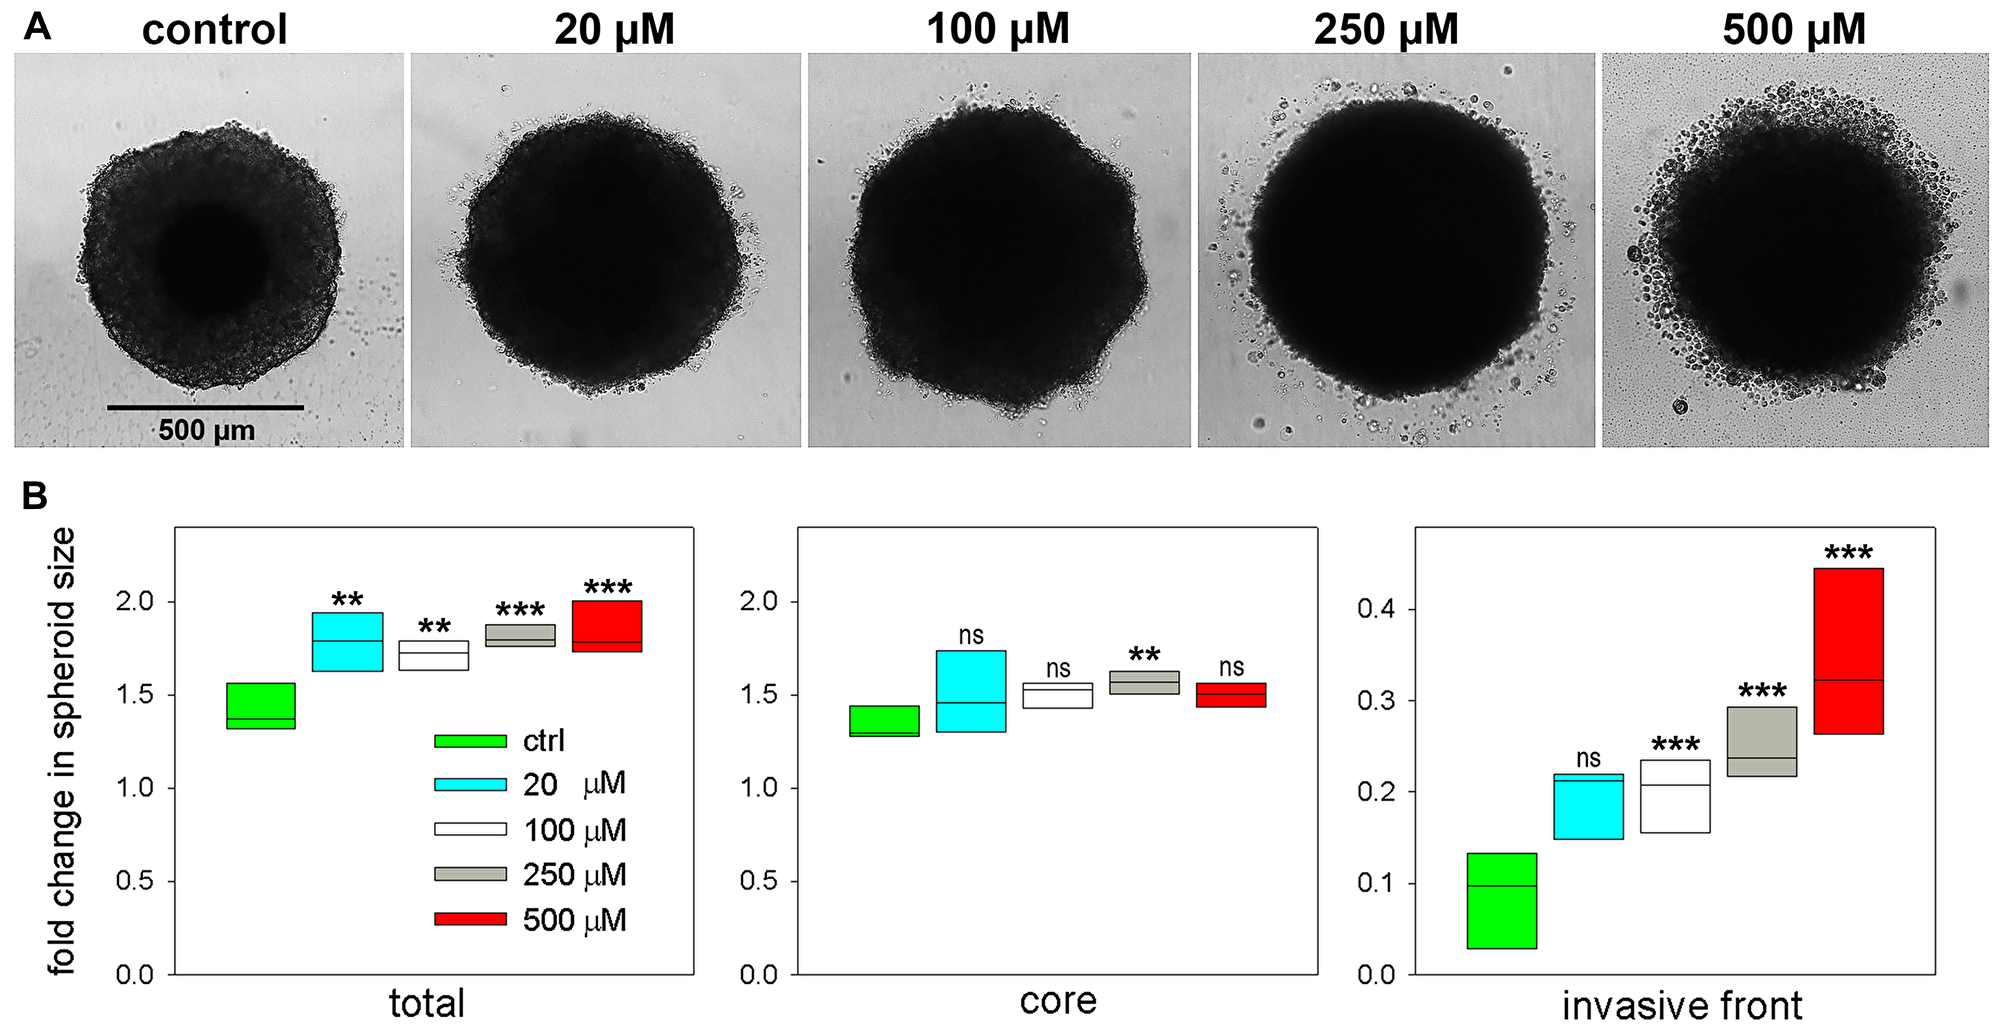 Effect of palmitoyl-lysophosphatidylcholine LPC[16:0] on tumor spheroid invasion and growth.